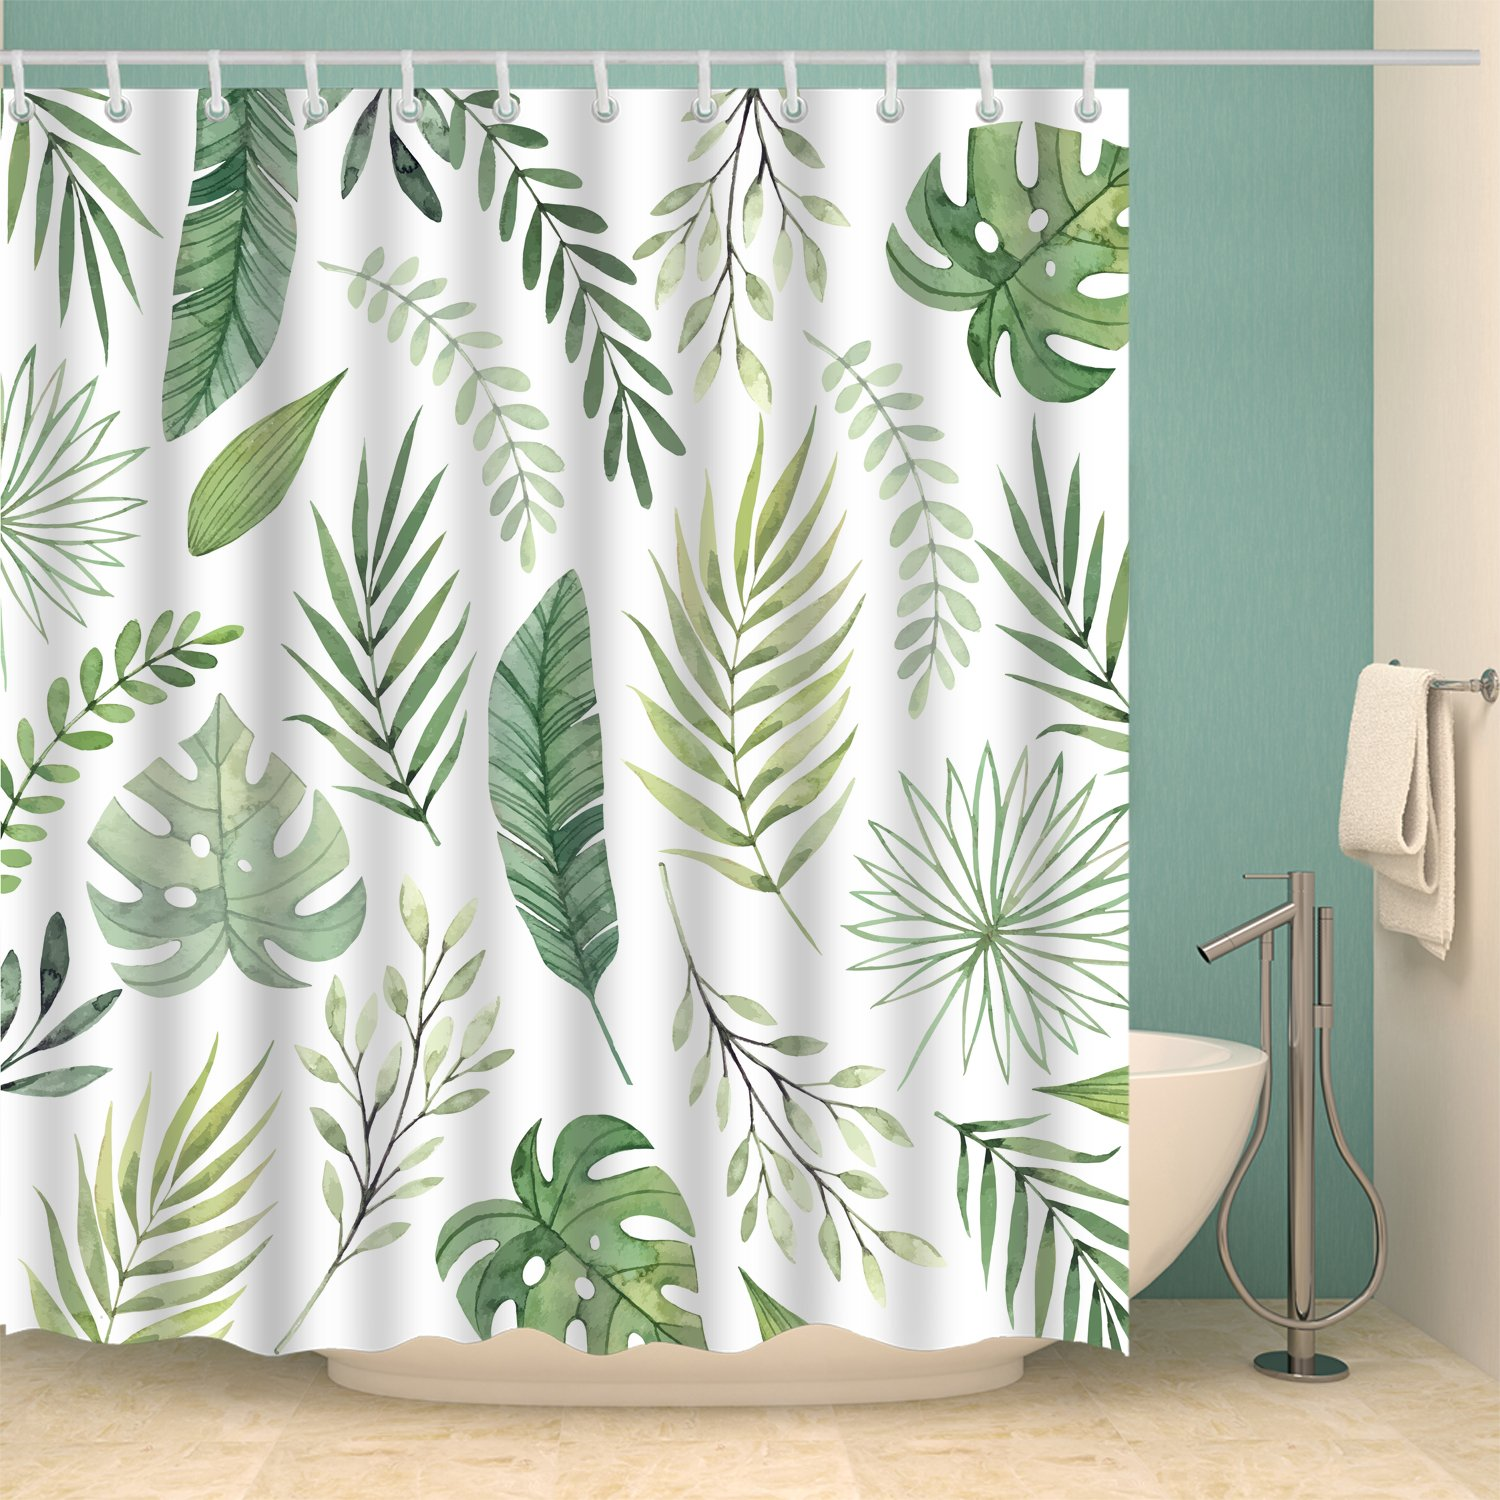 Summer Tropical Seamless Green Palm Floral Leaves Shower Curtain In 2020 Green Shower Curtains Cute Shower Curtains Printed Shower Curtain